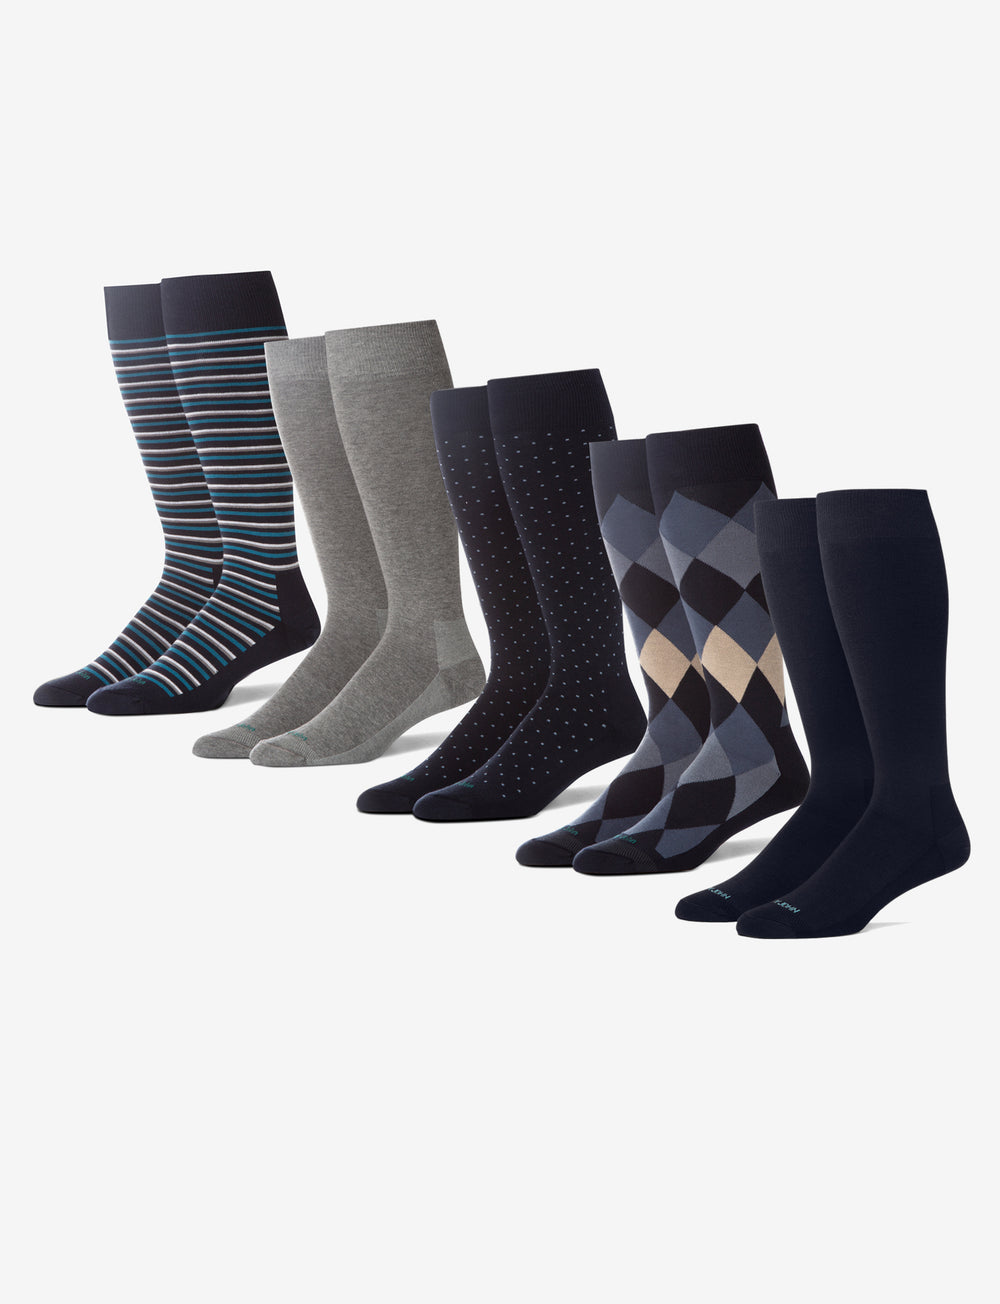 Men's Stay Up Dress Sock Blue Work Week 5 Pack Details Image